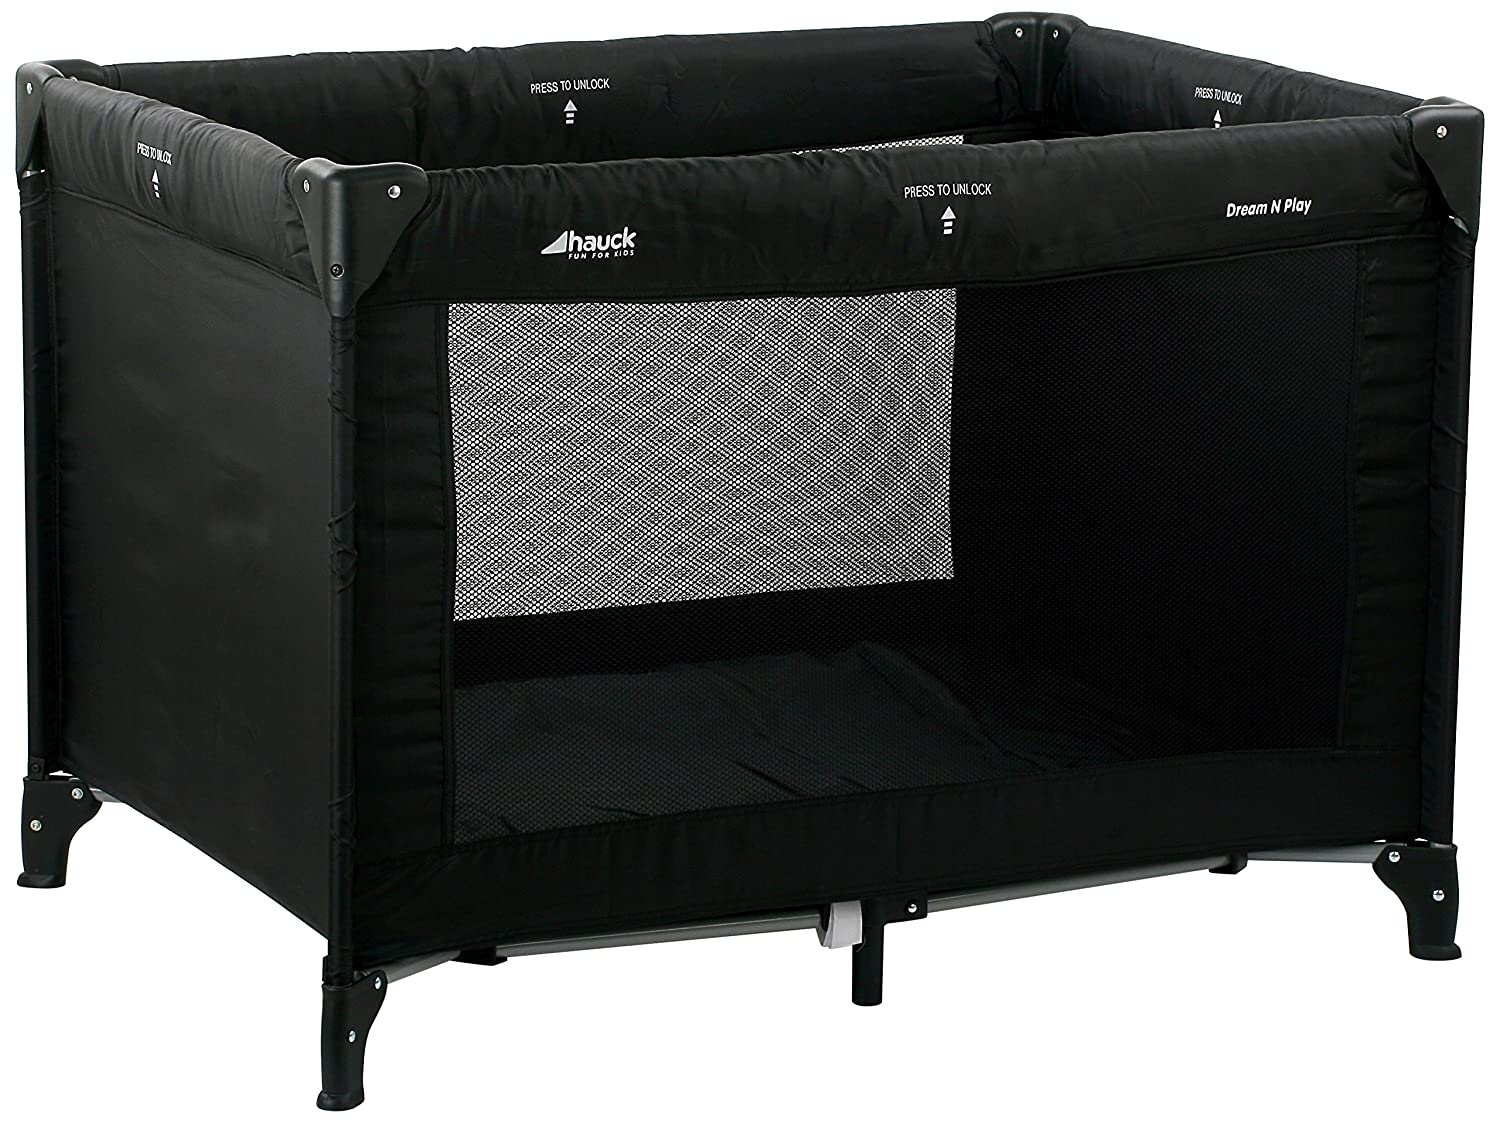 Hauck dream n play reisebett schwarz cm ca amazon